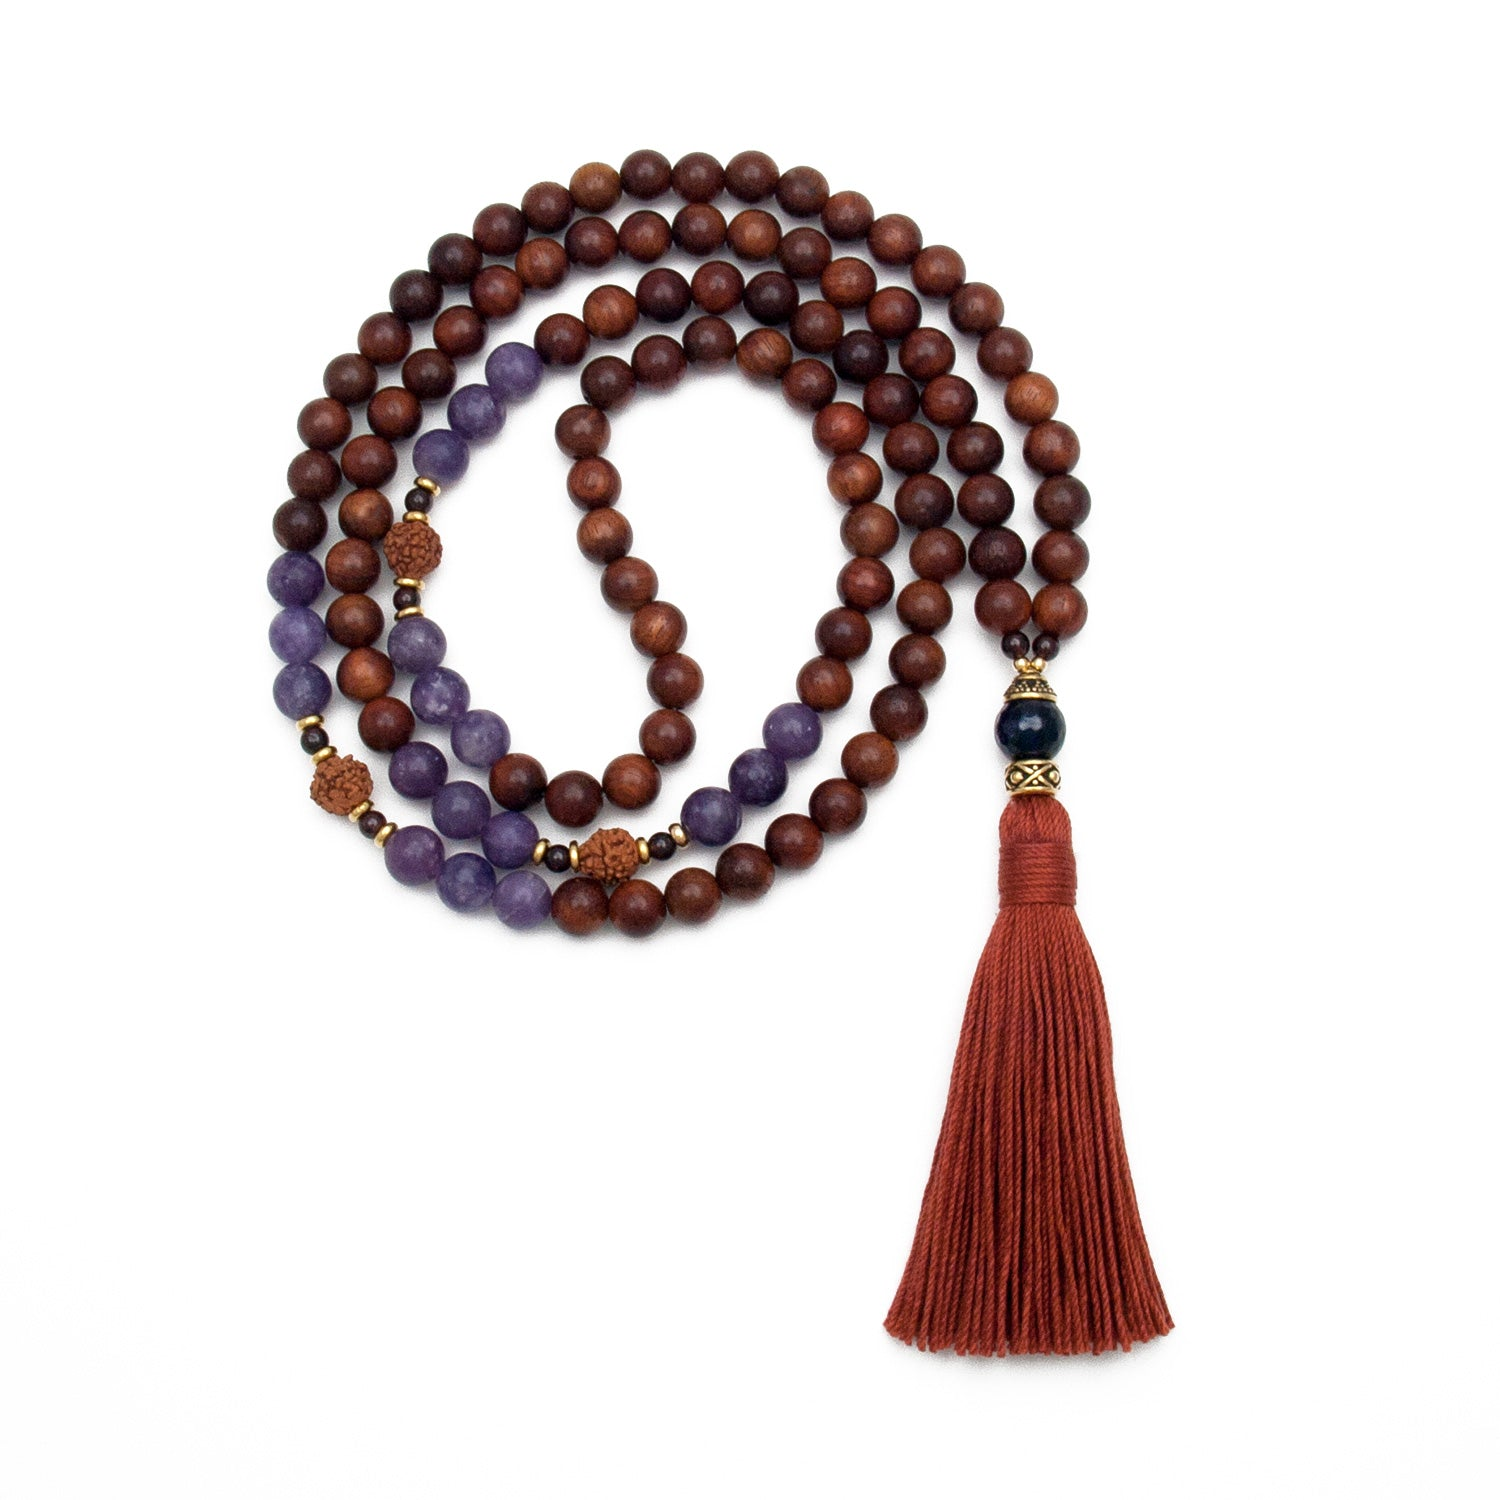 Insight Mala - Rudraksha, Rosewood, Lepidolite & Amethyst by Golden Lotus Mala